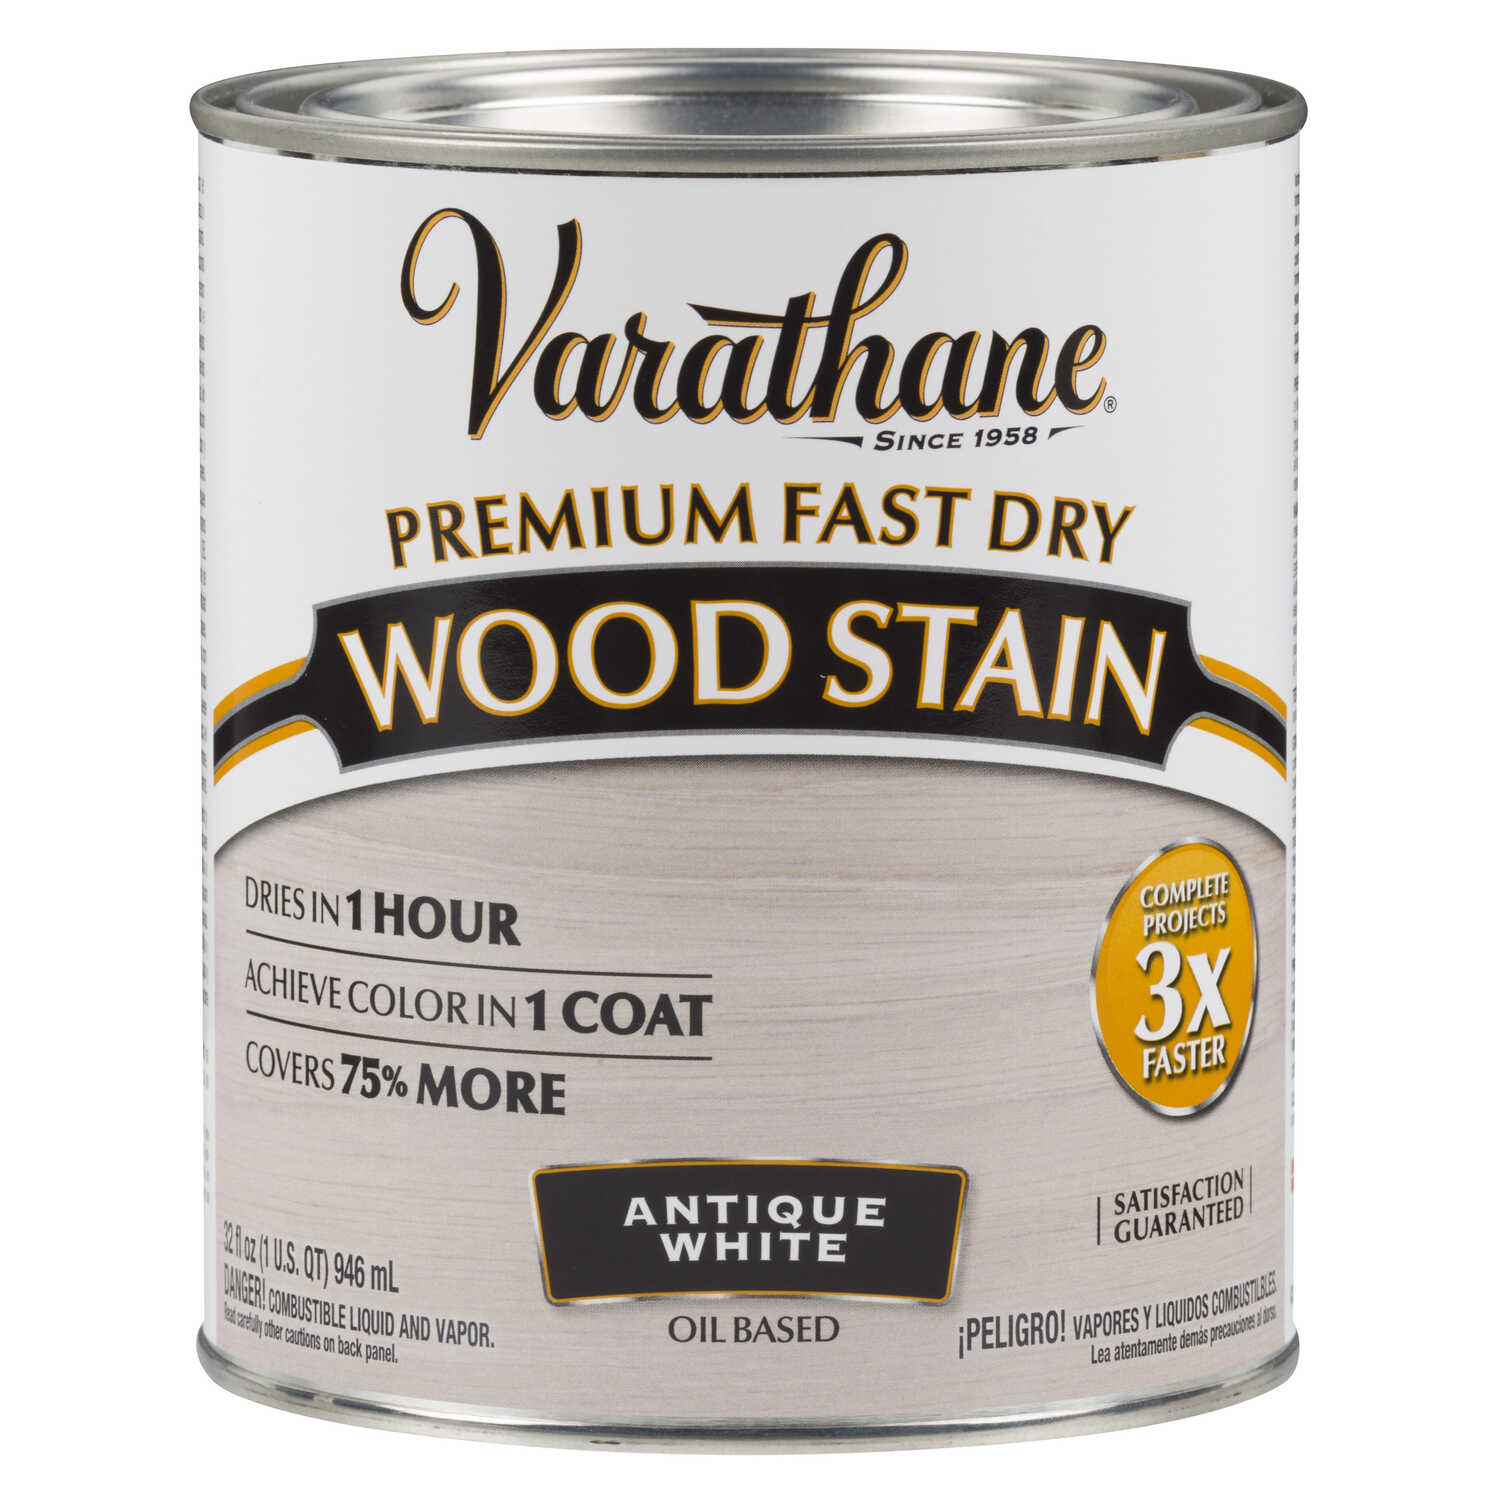 Varathane  Premium Fast Dry  Semi-Transparent  Antique White  Wood Stain  1 qt.